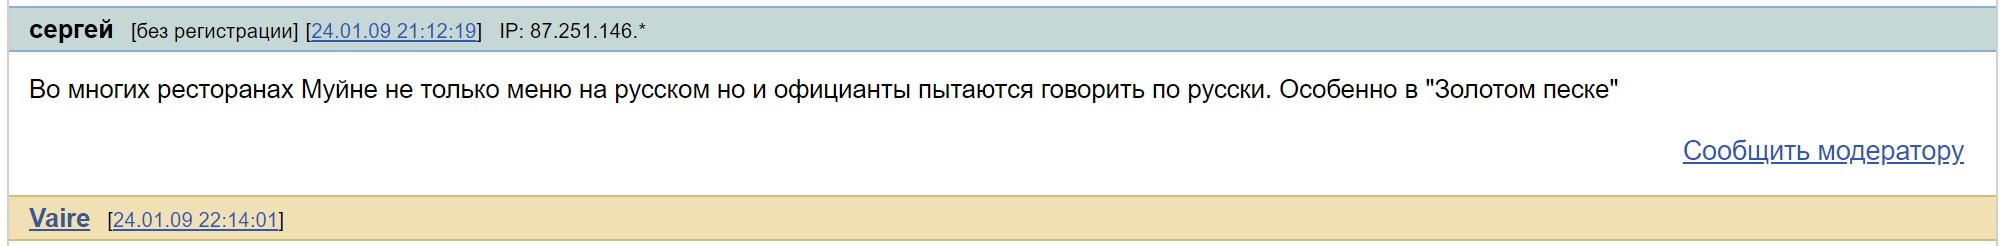 "January 24, 2008 Post by User 'Sergey"" Who Logged in With Proxy: 87.251.146. Source: Otzyv.ru."